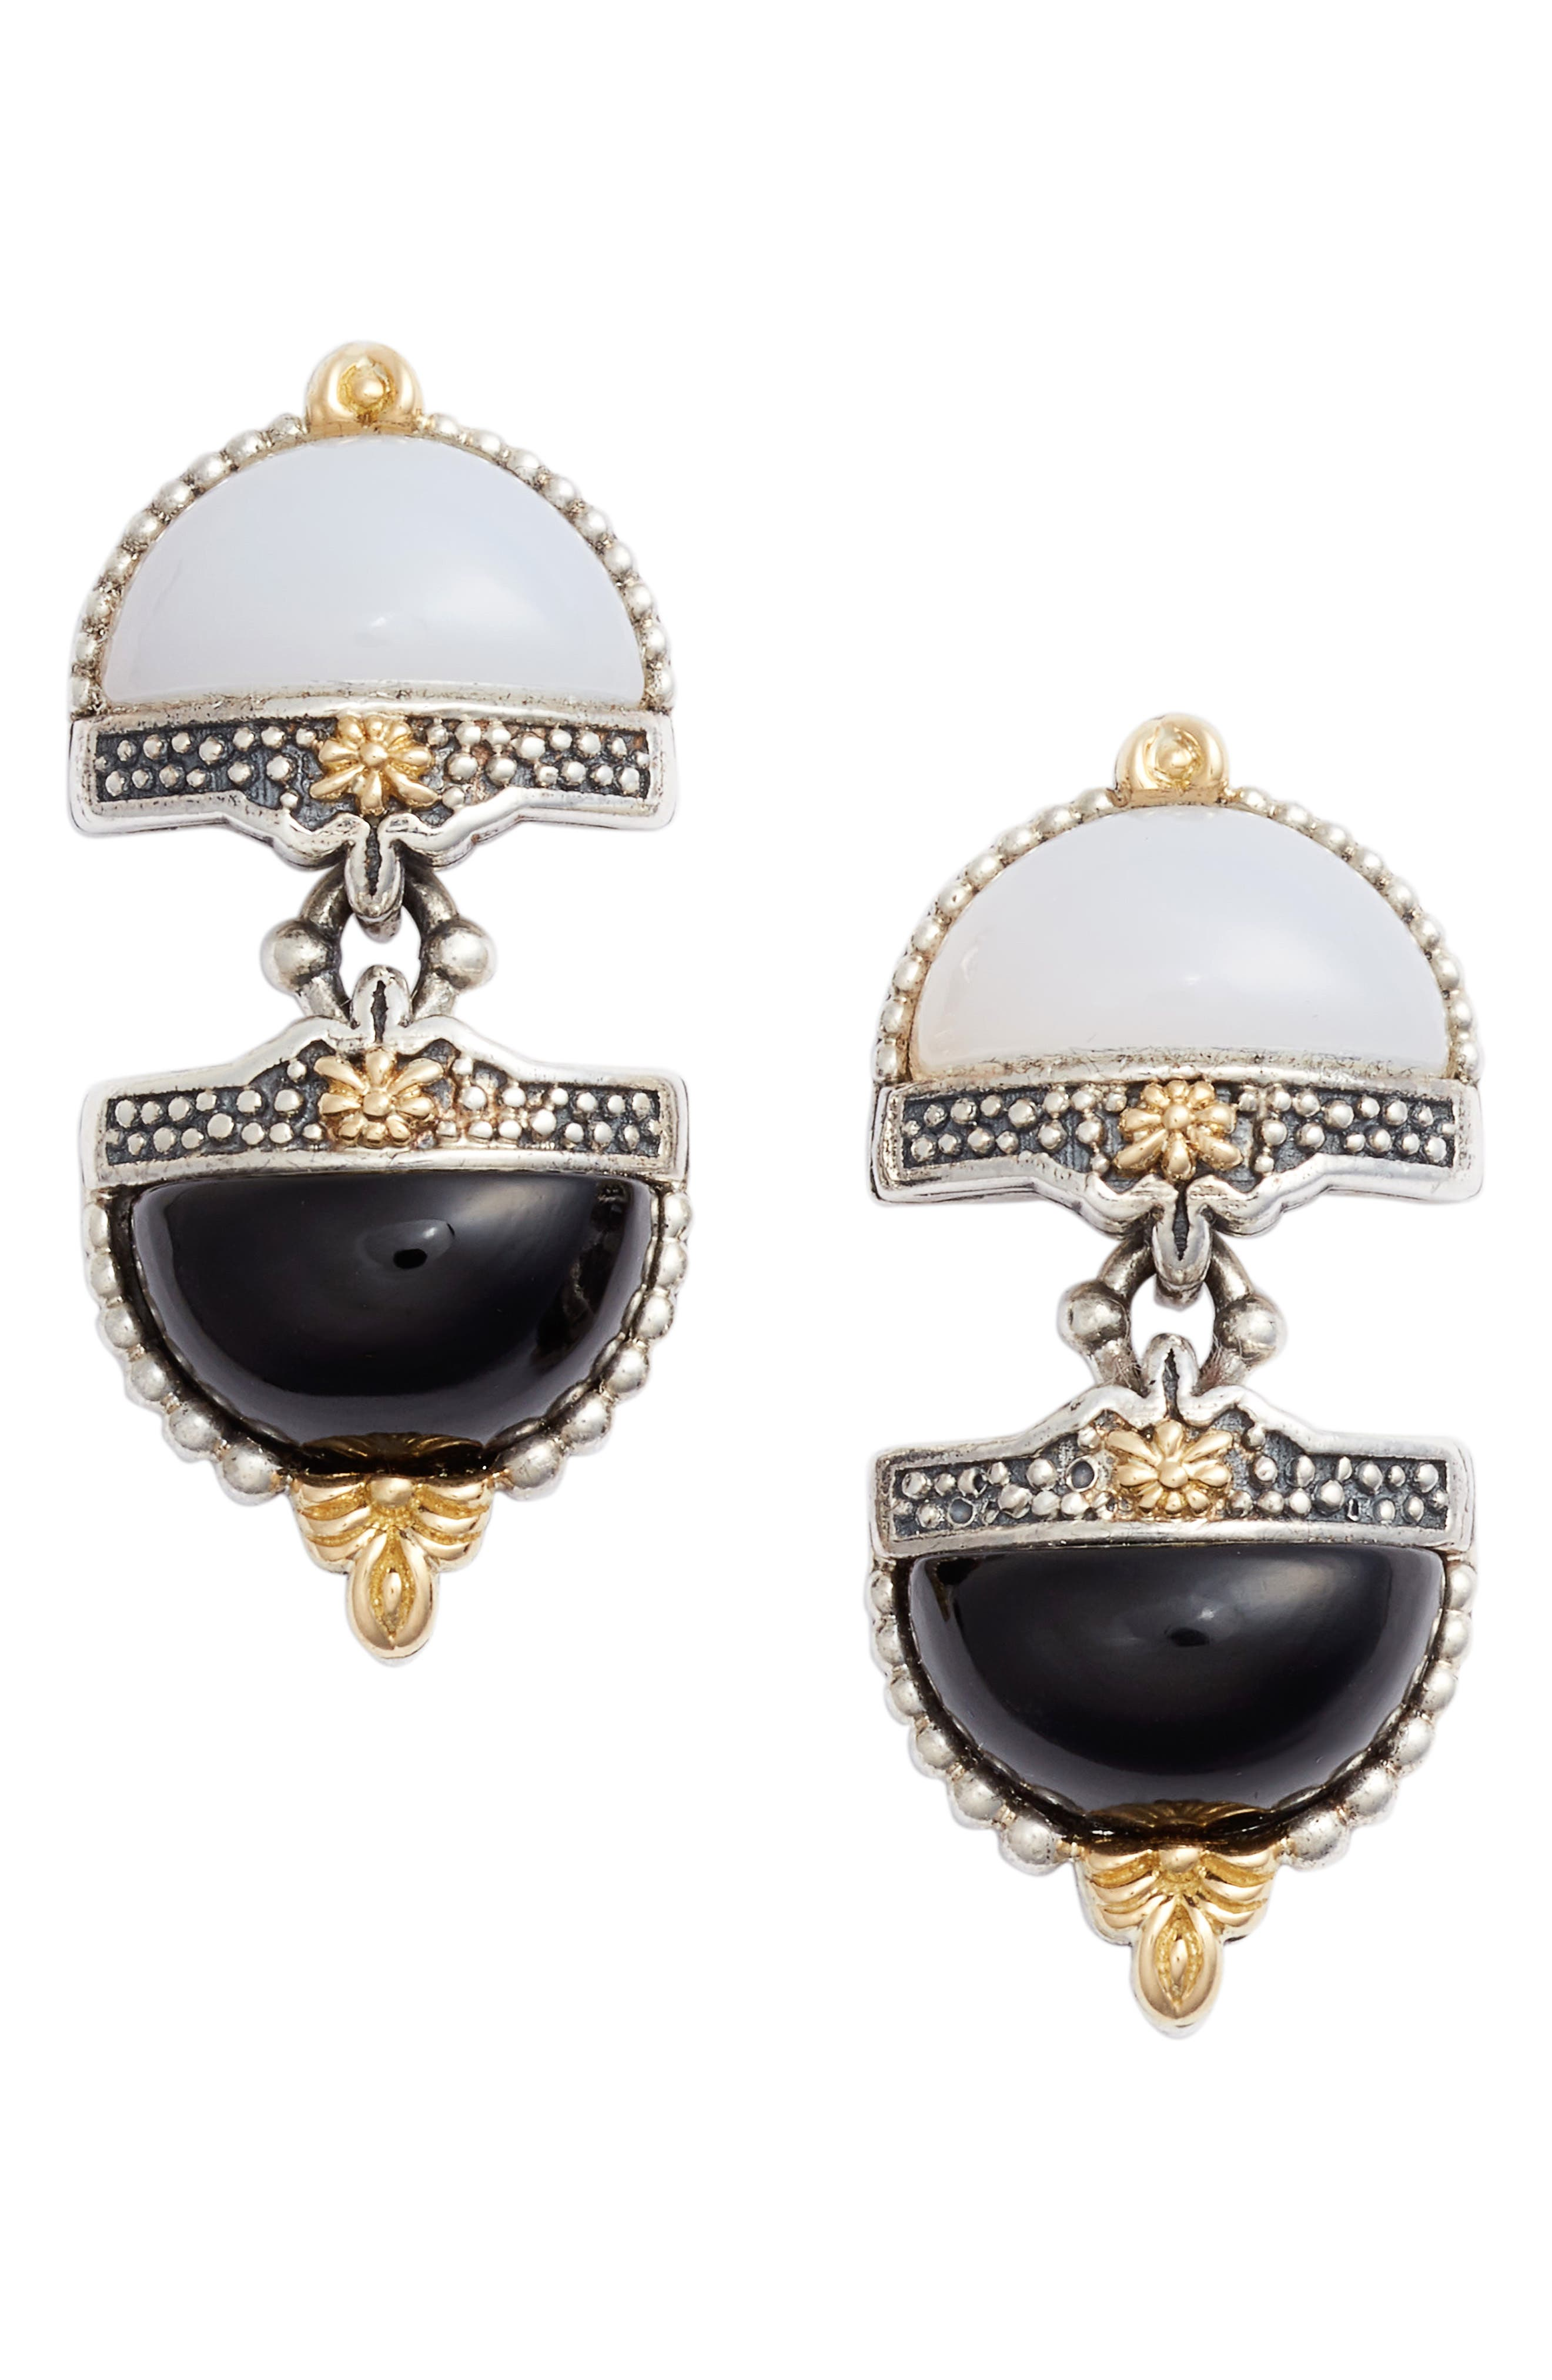 Sterling Silver & Agate Drop Earrings,                             Main thumbnail 1, color,                             BLACK/ WHITE/ SILVER/ GOLD